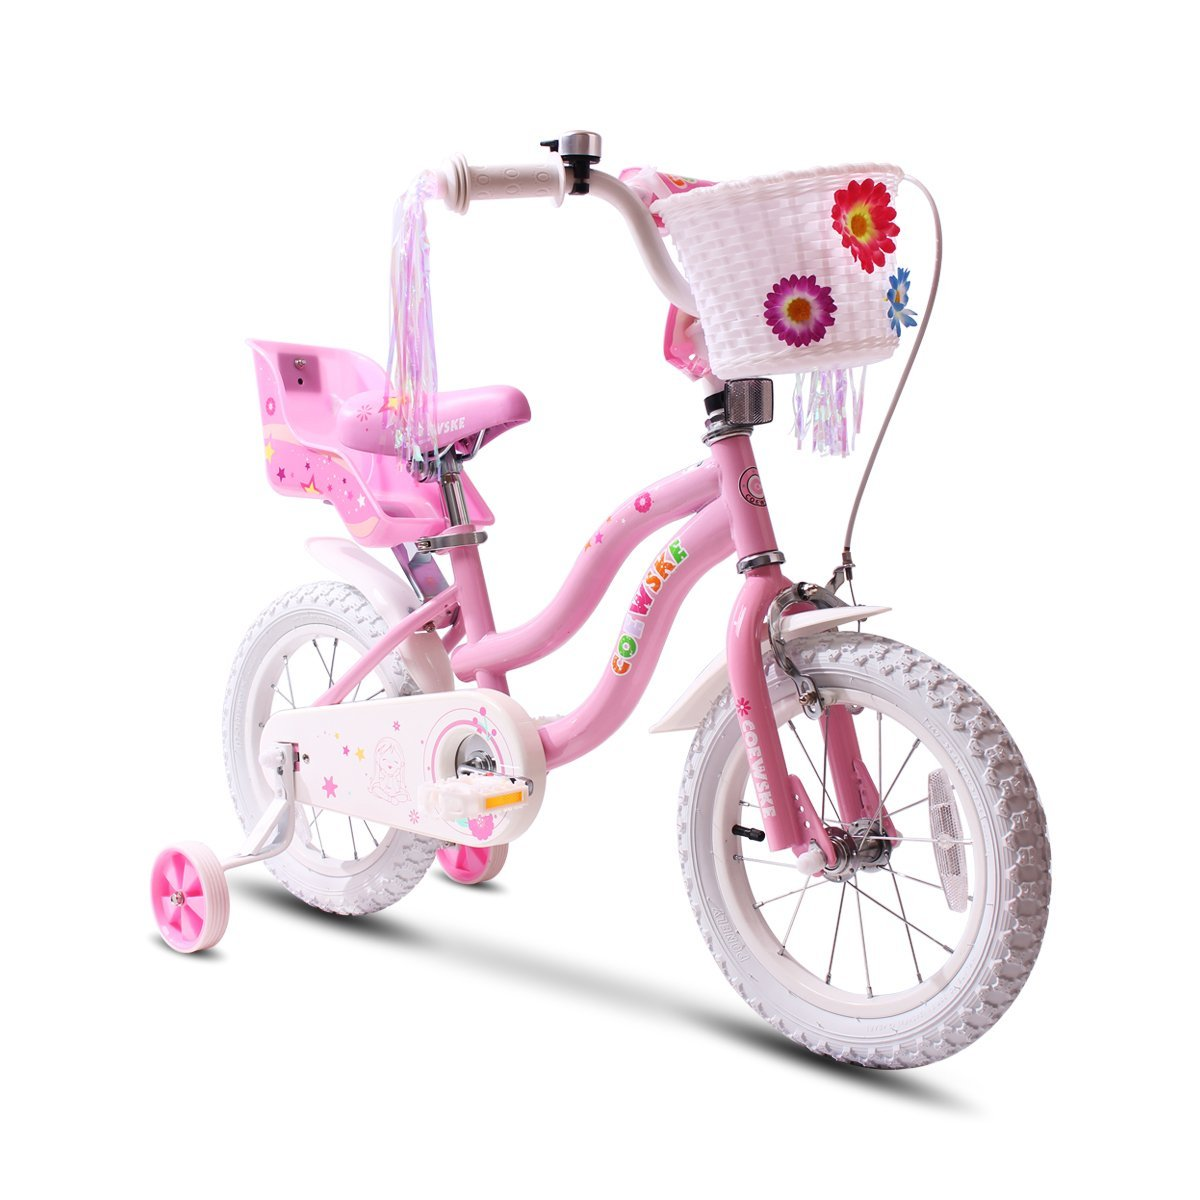 COEWSKE Kid's Bike Steel Frame Children Bicycle Little Princess Style 14-16 Inch with Training Wheel(14'' Pink)